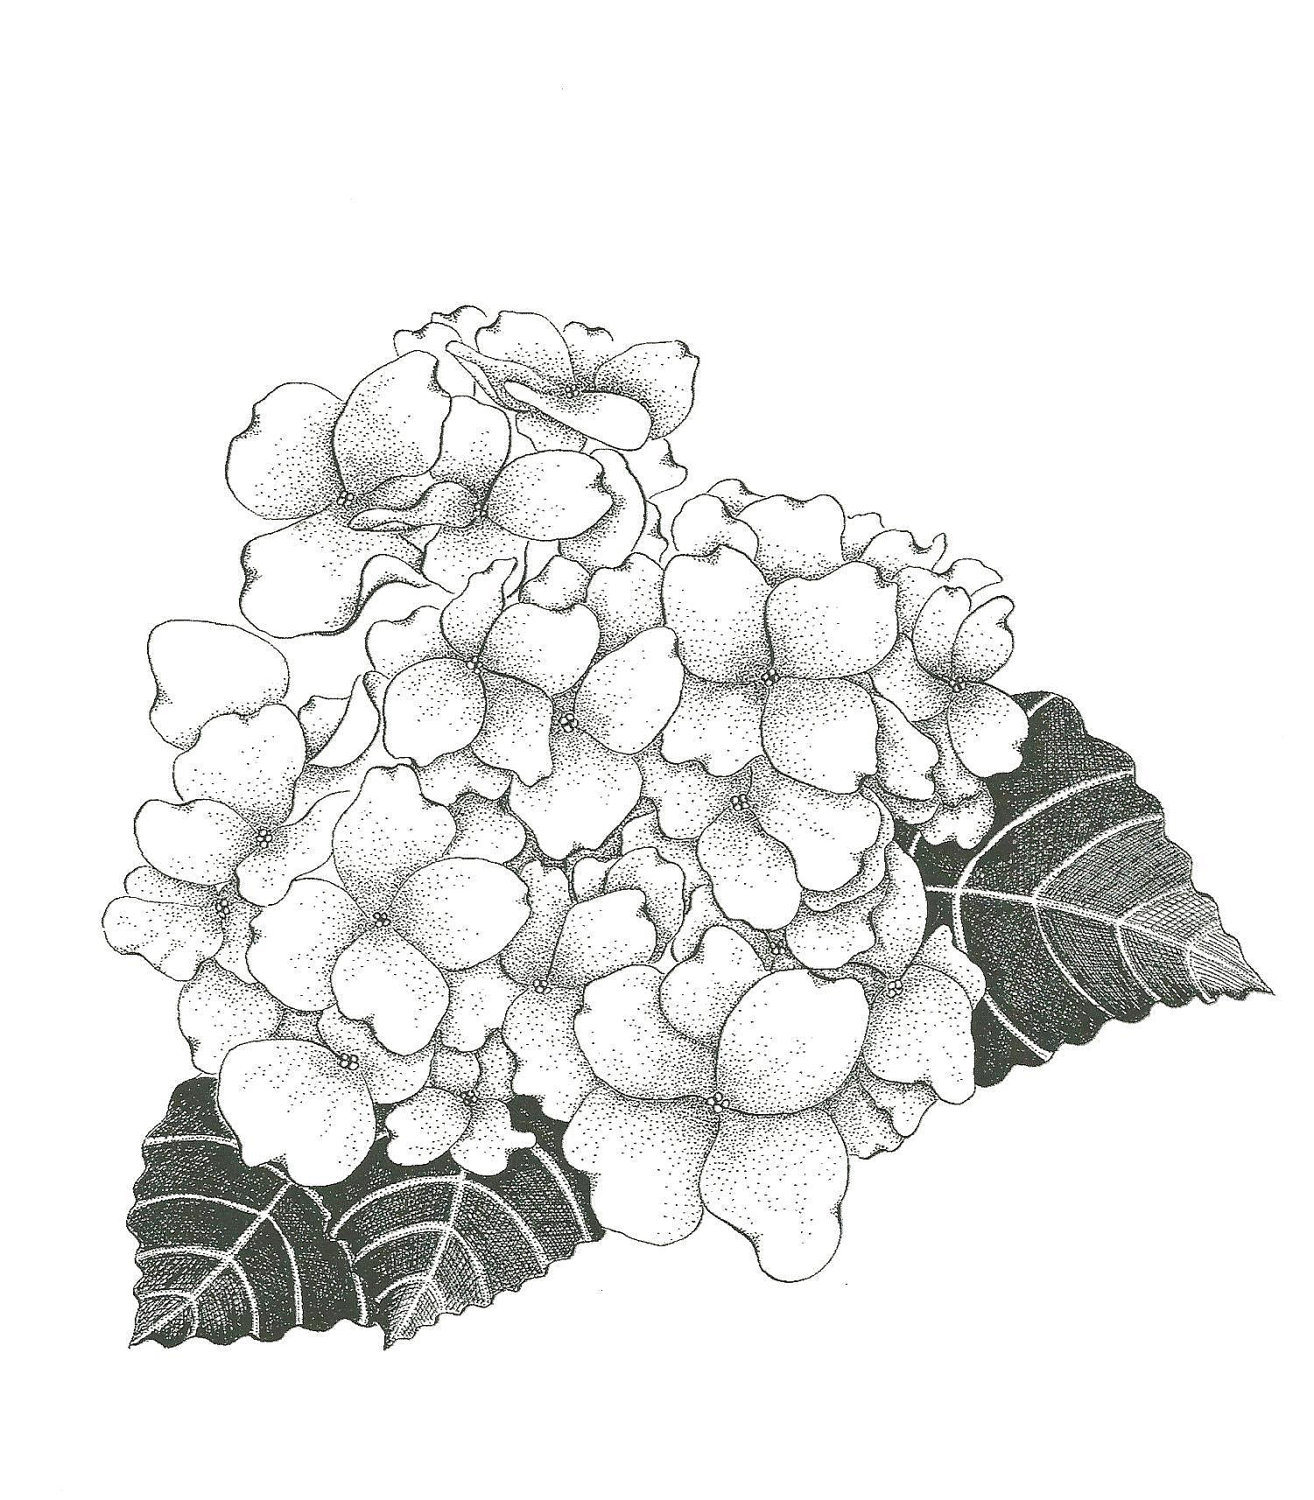 Black and white hydrangea sketch love this for a tattoo!.